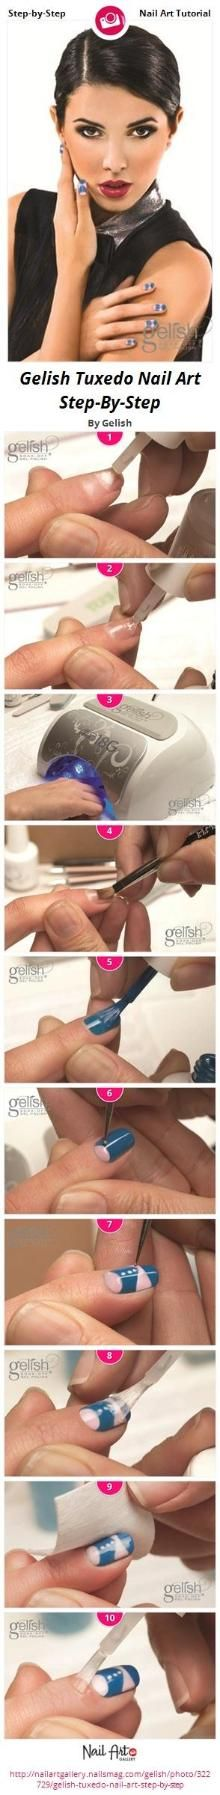 Nail Art / NEON TRIBAL NAIL ART TUTORIAL - Fereckels